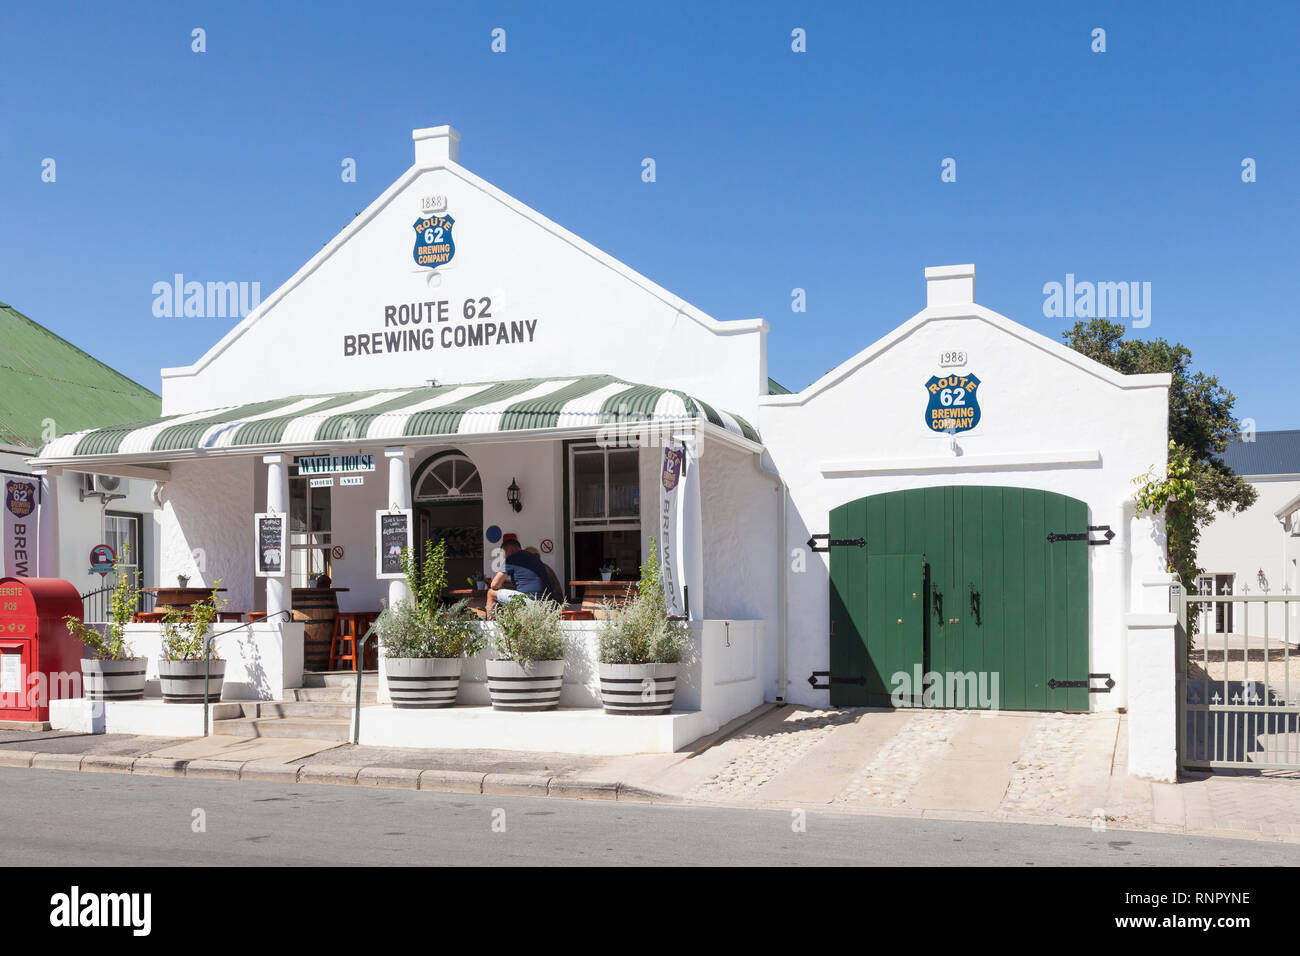 Route 62 Brewing Company, craft beer micro brewery and waffle house, Montagu, Western Cape, South Africa on the Beer Route through the Langegberg - Stock Image